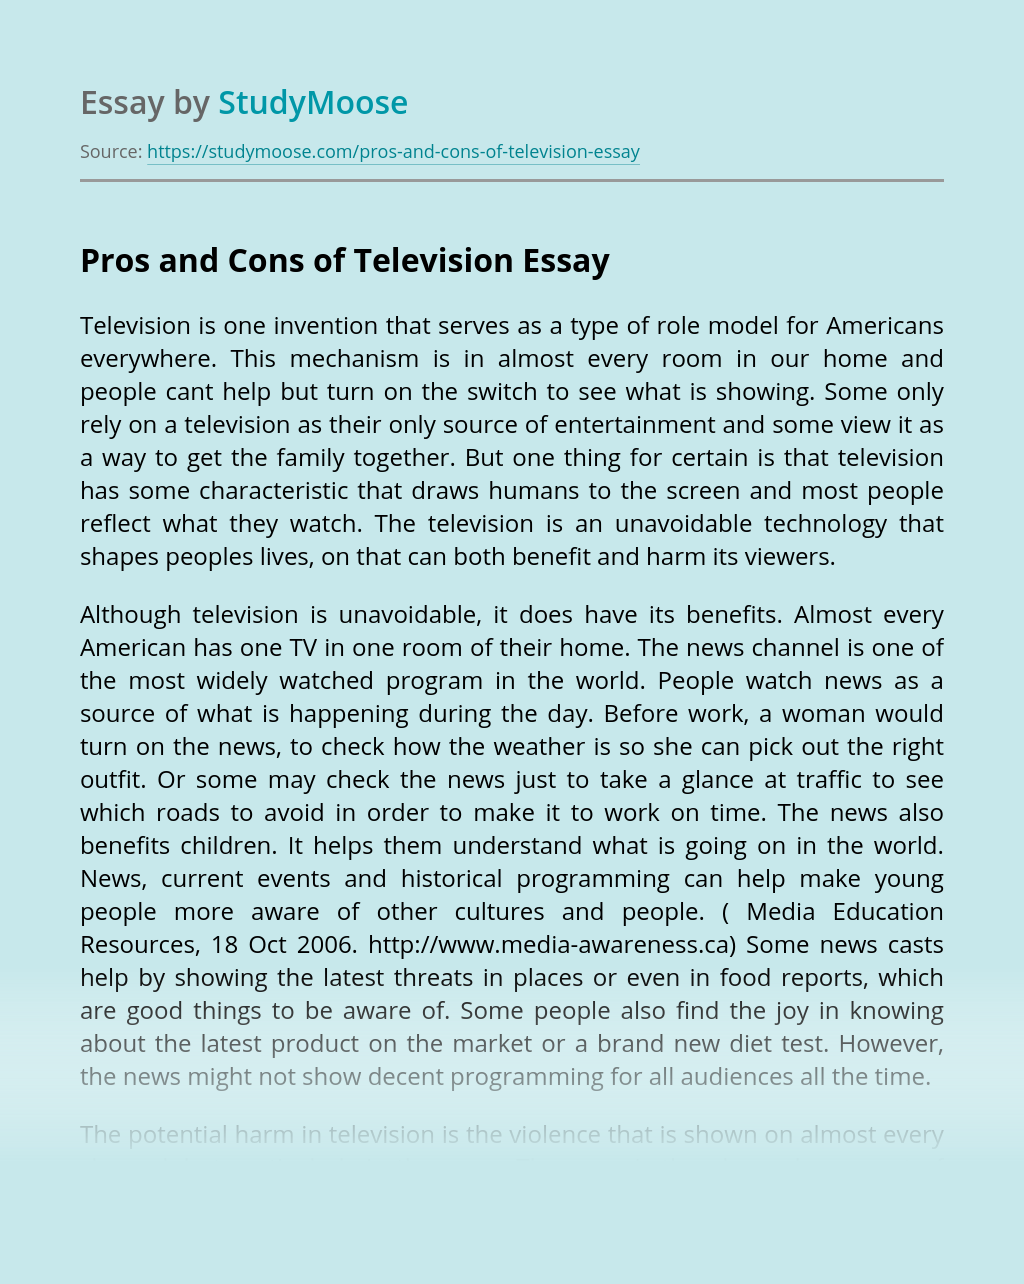 Pros and Cons of Television